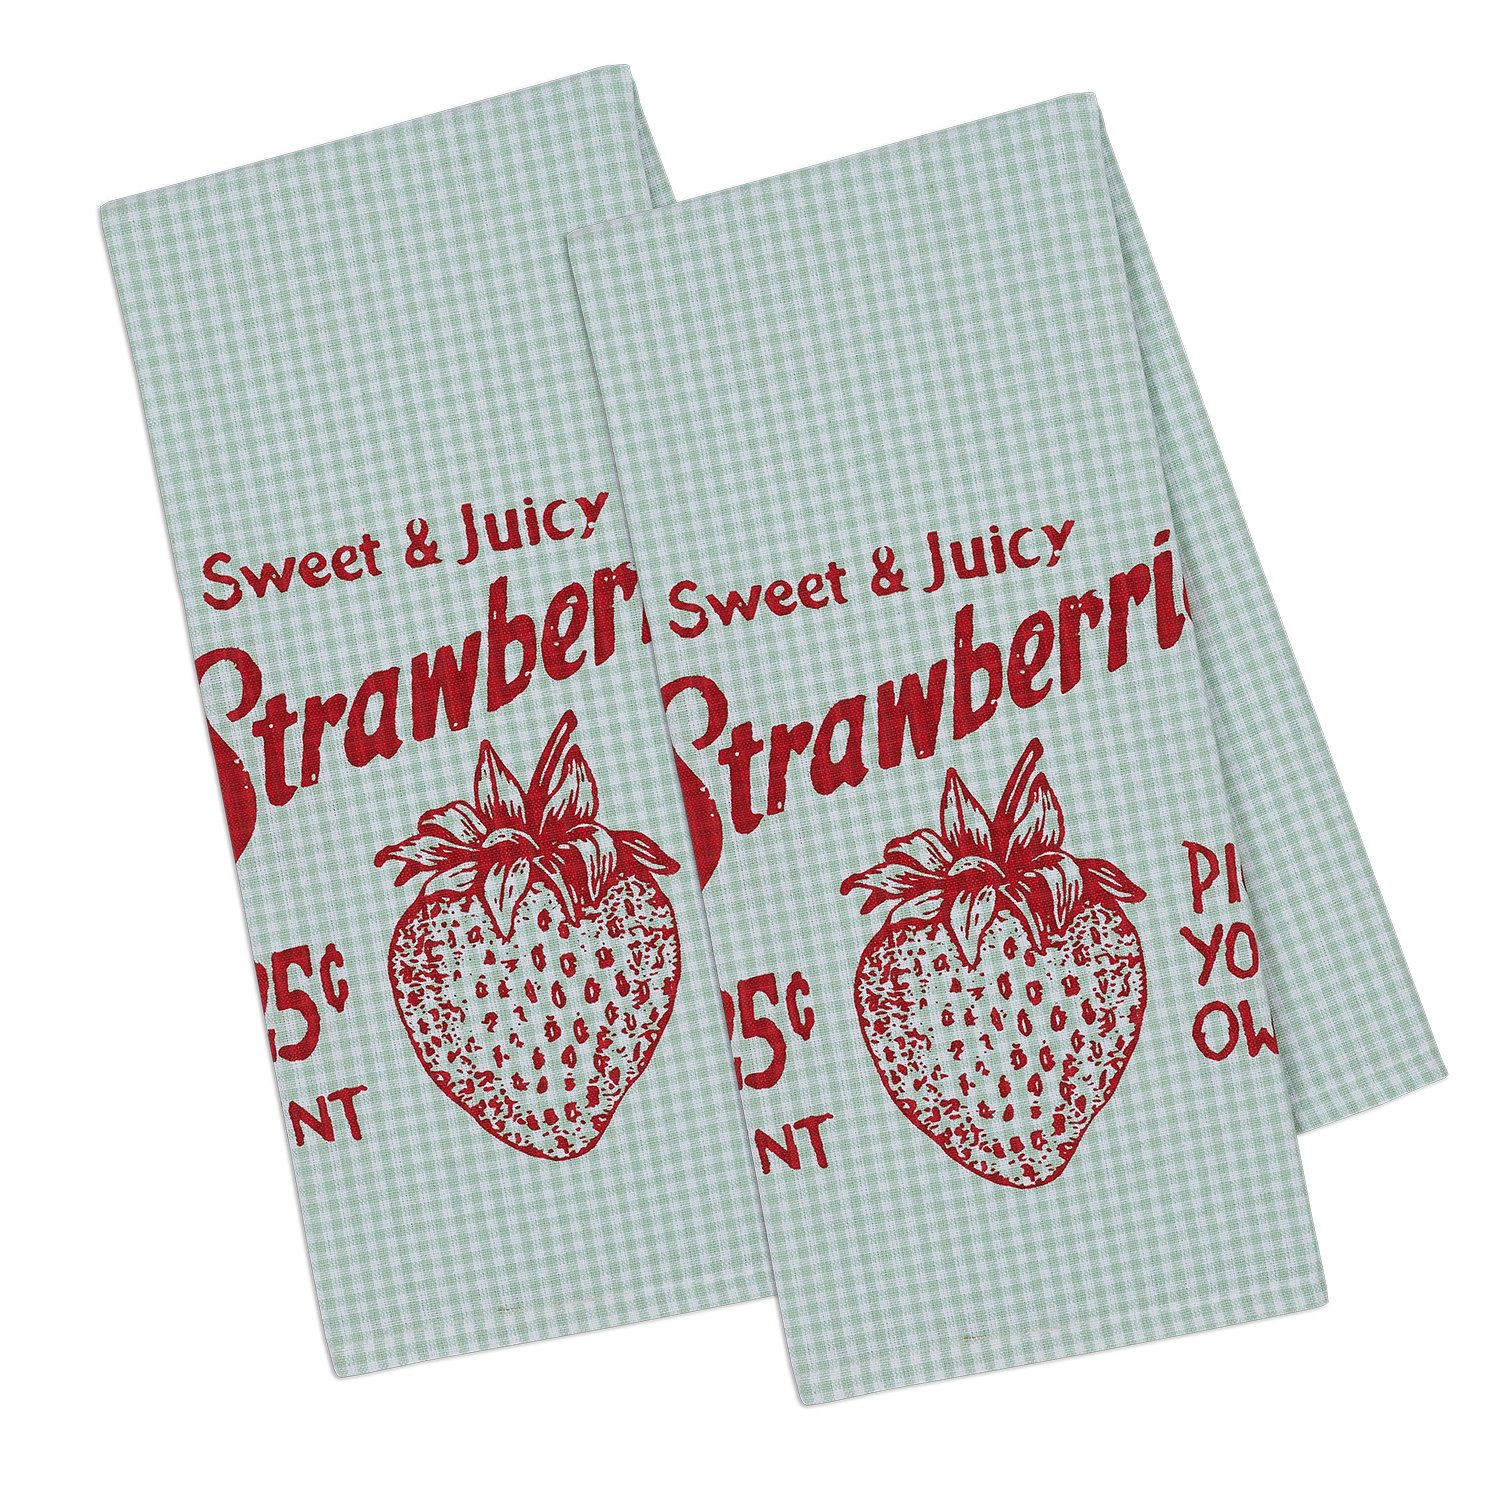 "DII Cotton Printed Dish Towels, 18x28"" Set of 2, Decorative Oversized Kitchen Towels,Perfect Home and Kitchen Gift-Strawberry Picking"